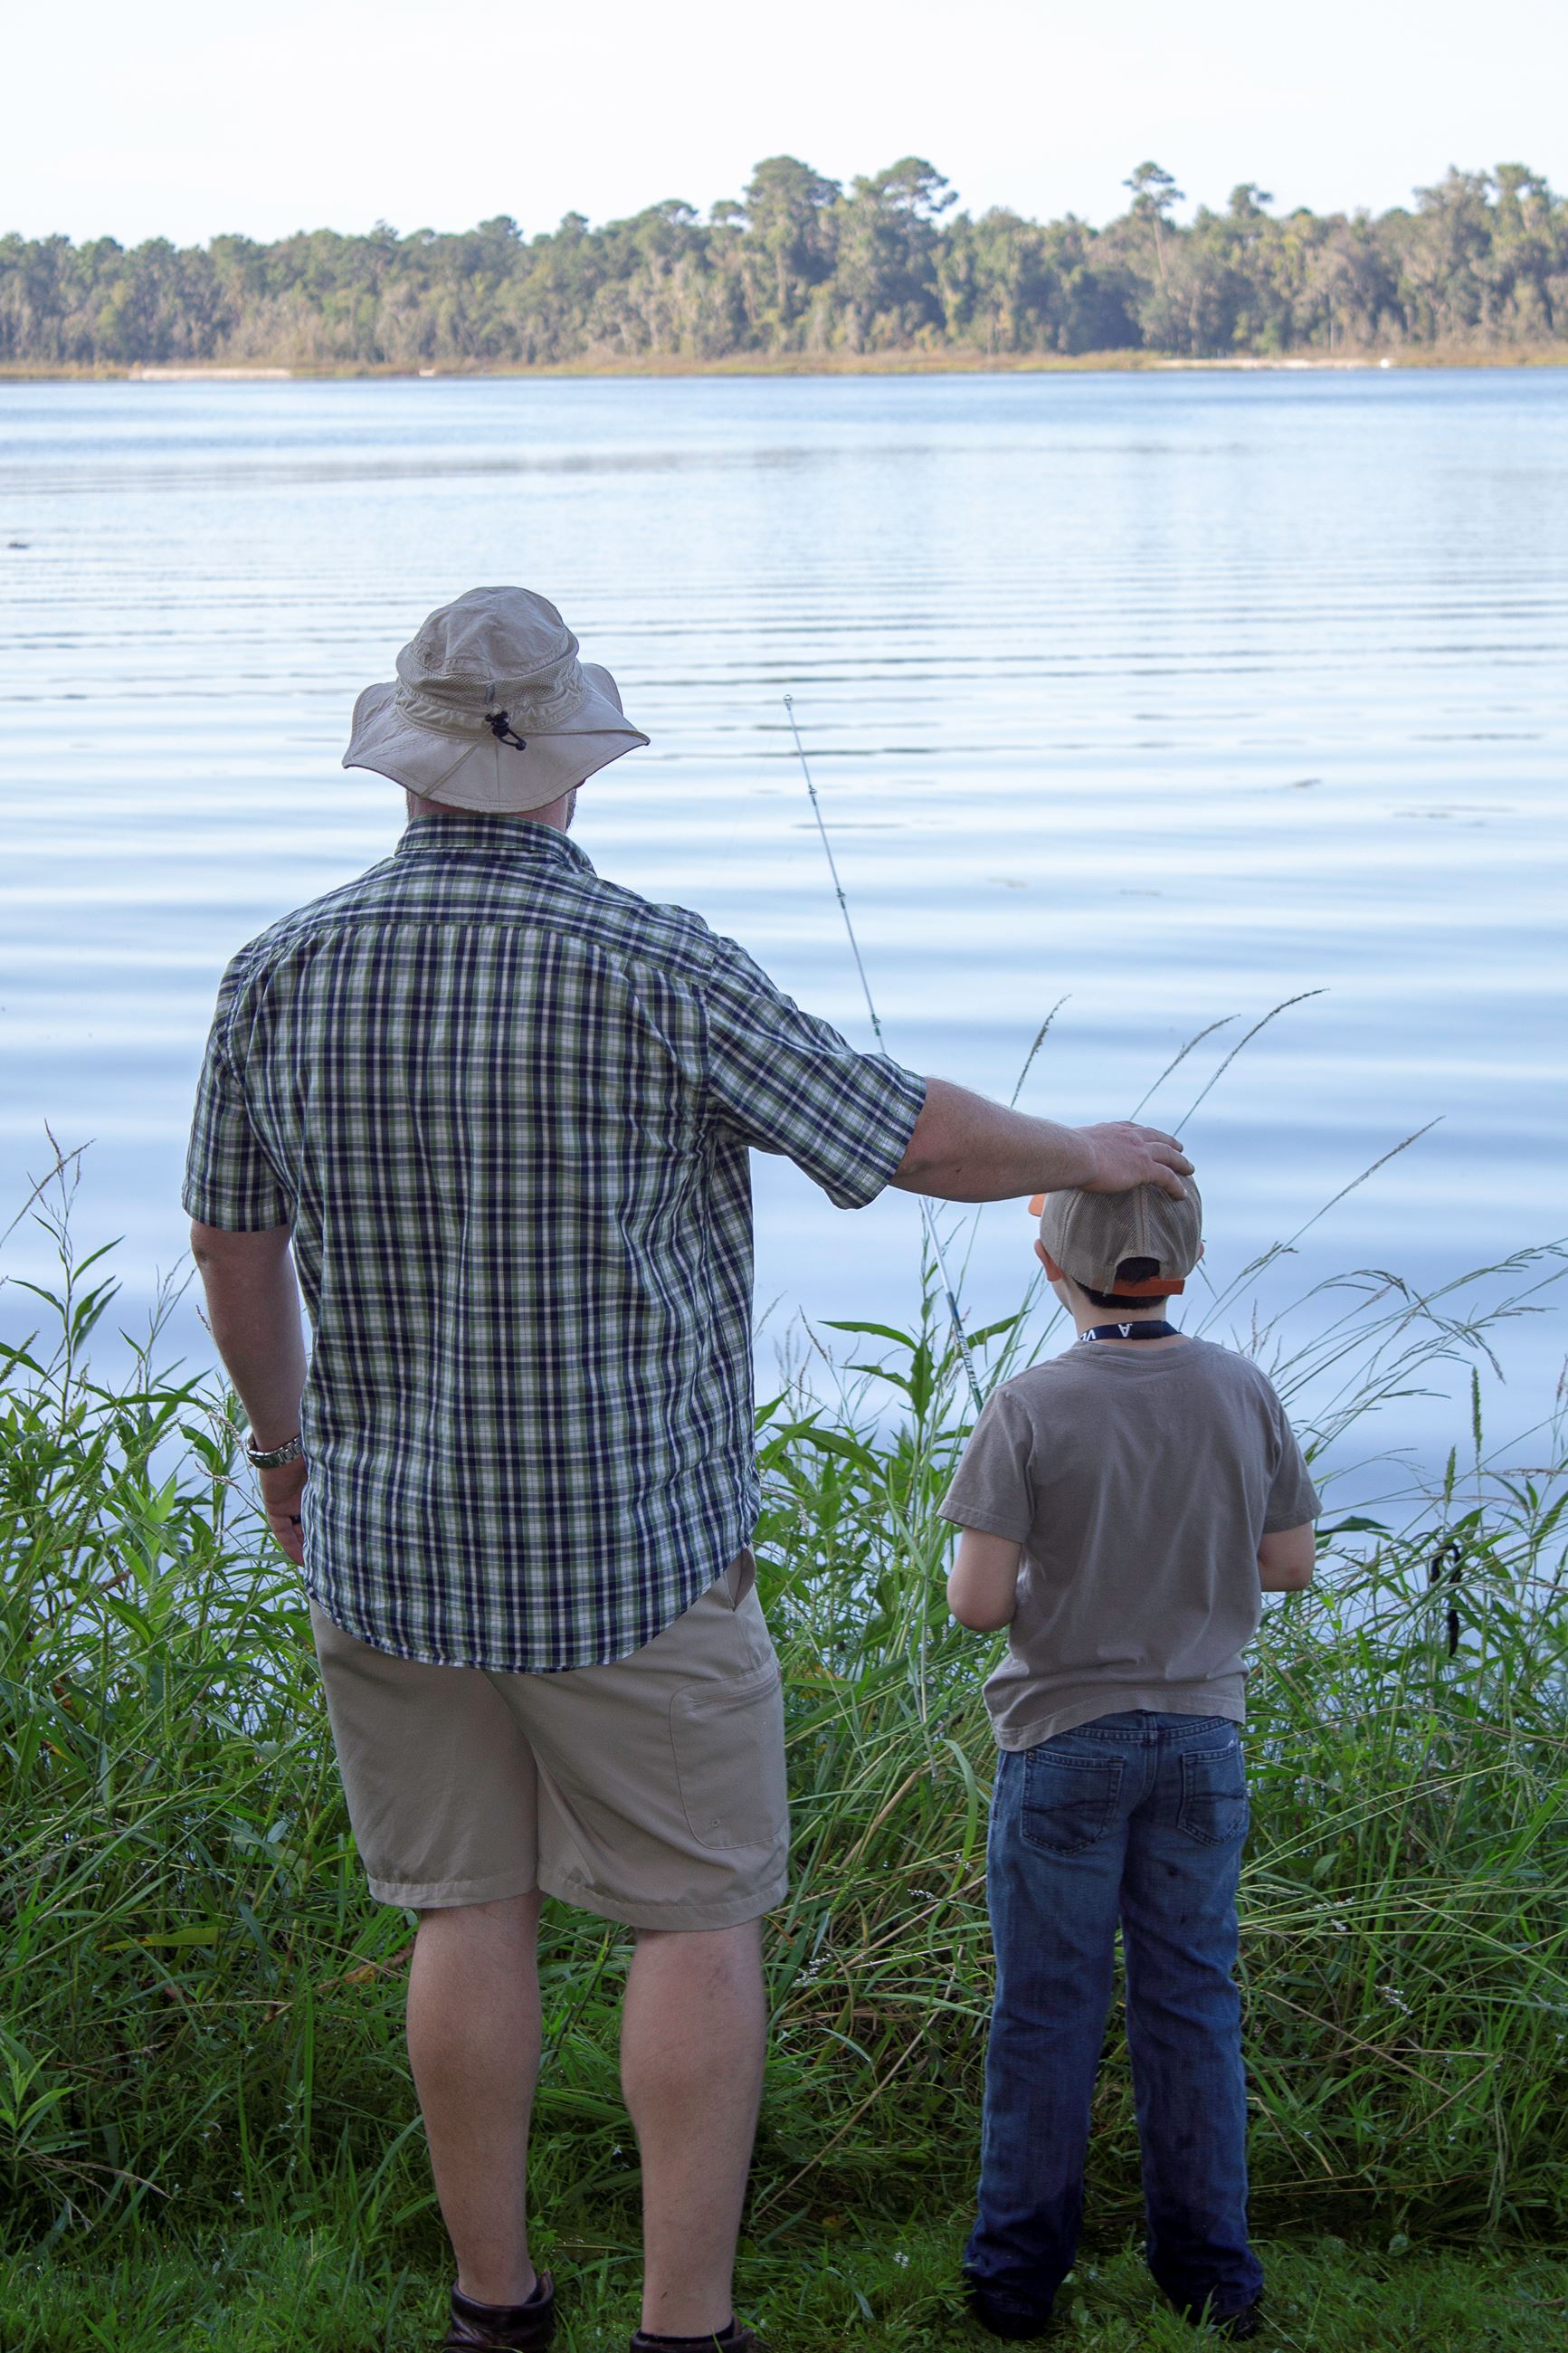 Image of adult and child fishing